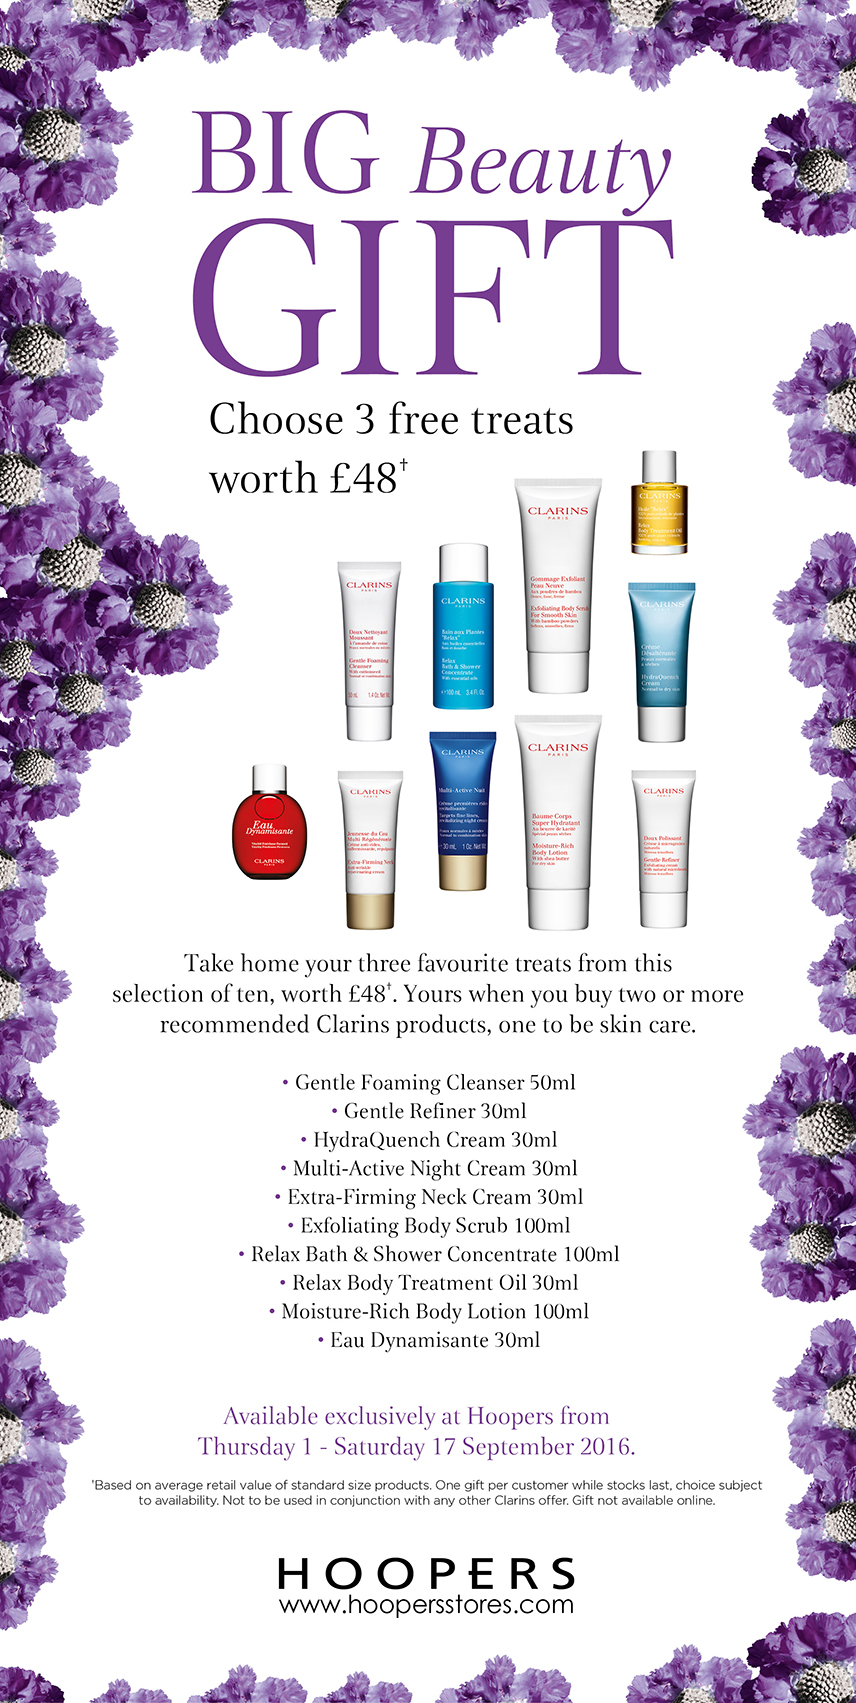 Hoopers Big Beauty Gift Clarins